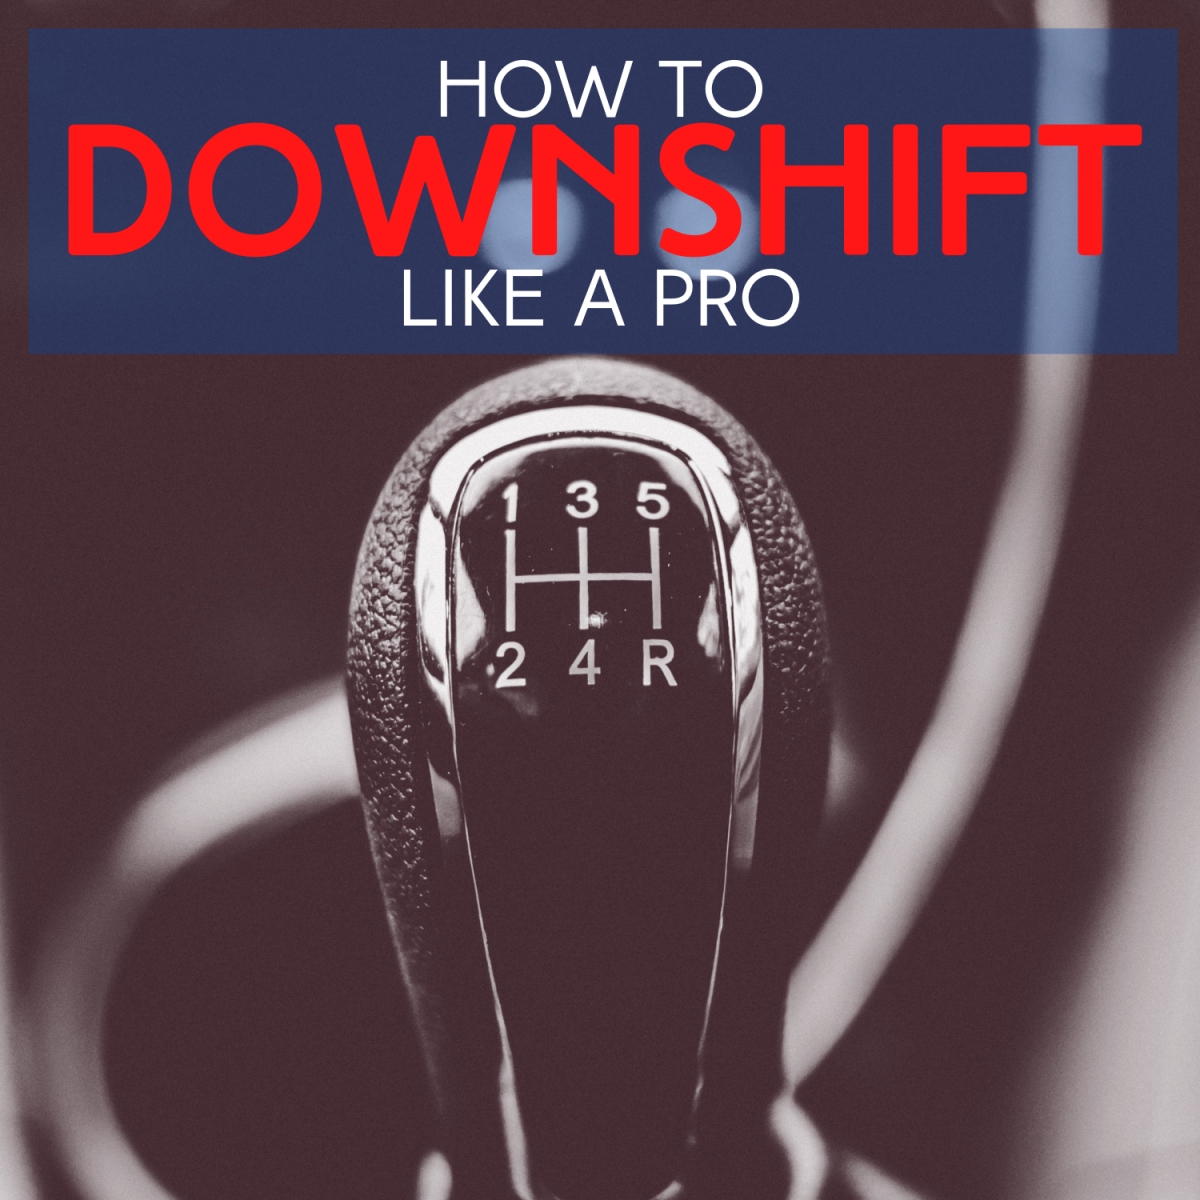 How to Downshift a Manual Transmission Vehicle